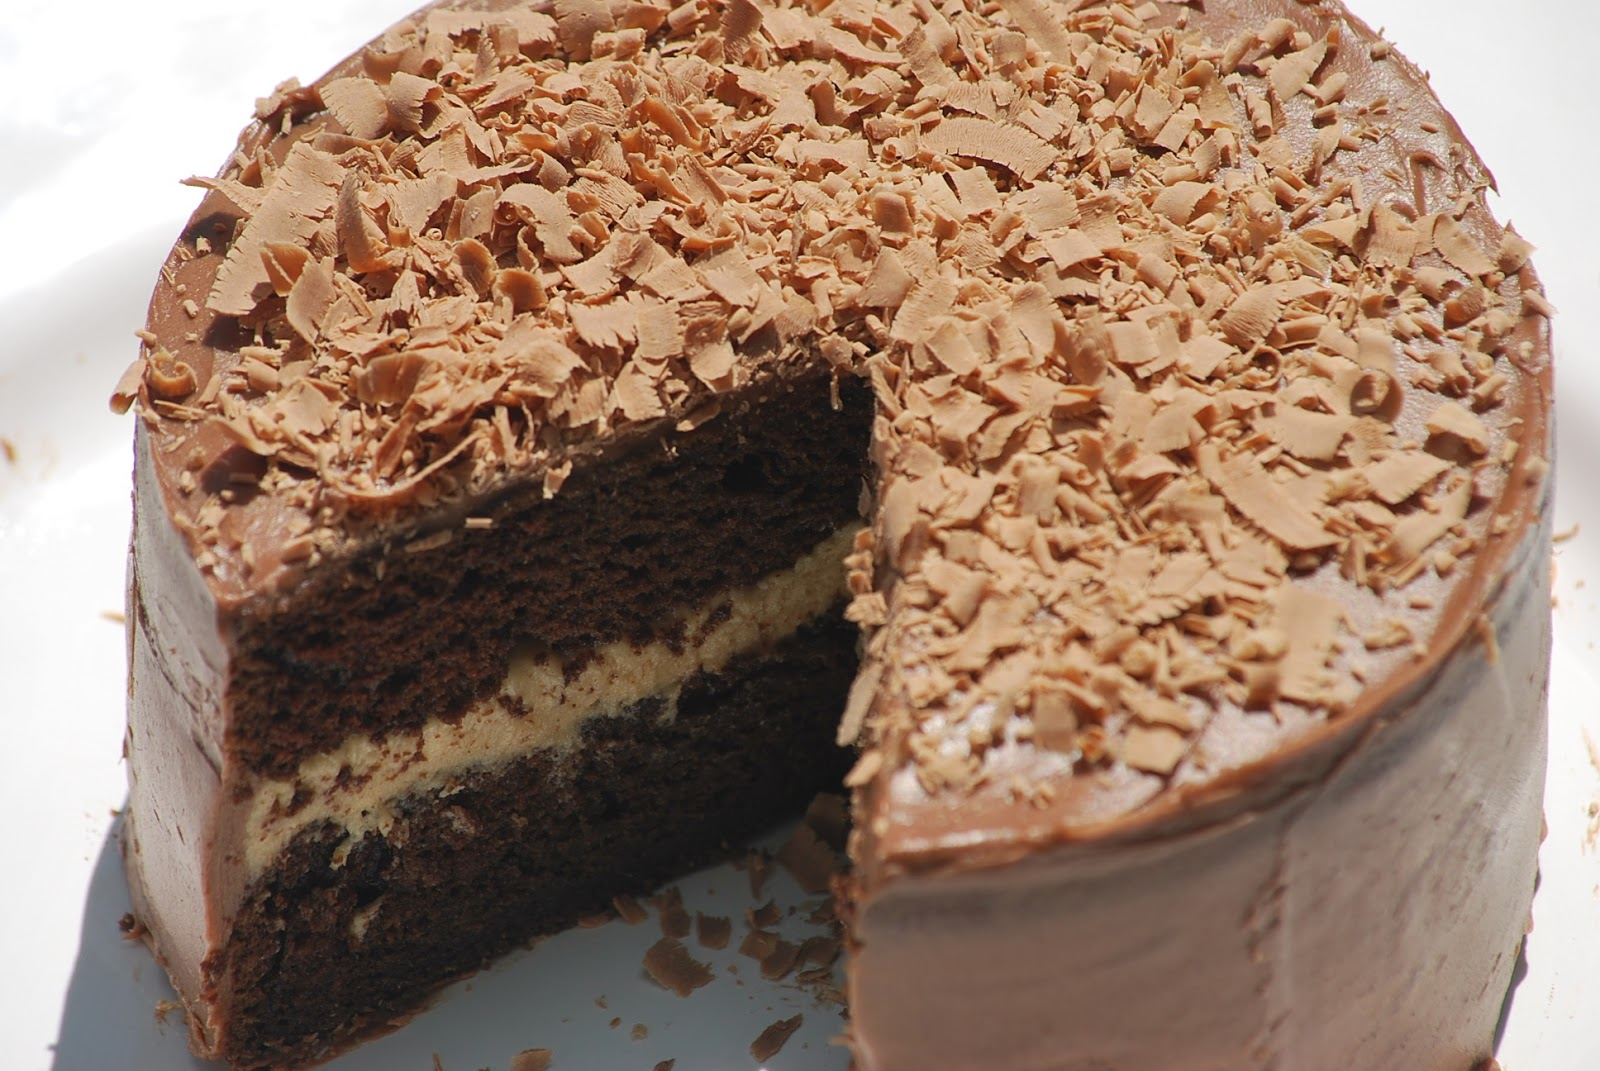 My story in recipes: Gluten Free Chocolate Cake